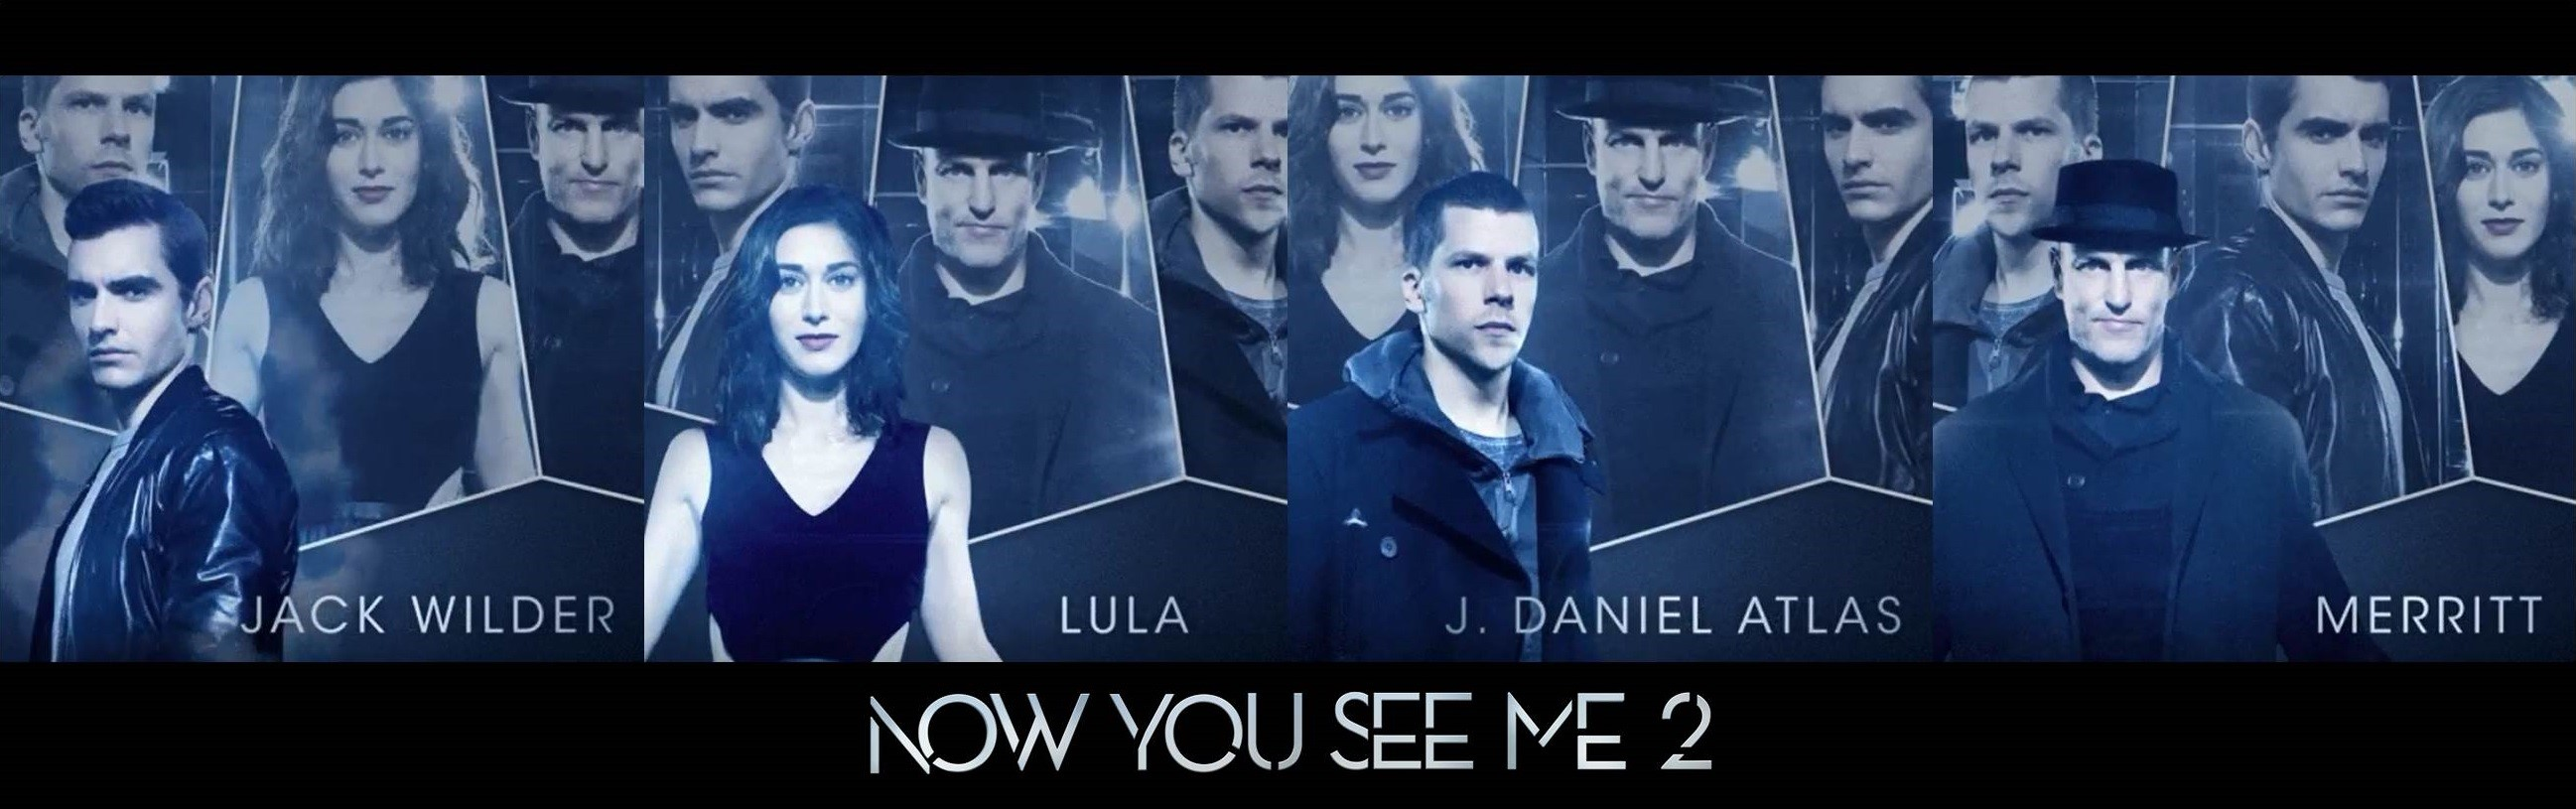 Now You See Me 2 Action Movies Gsc Movies